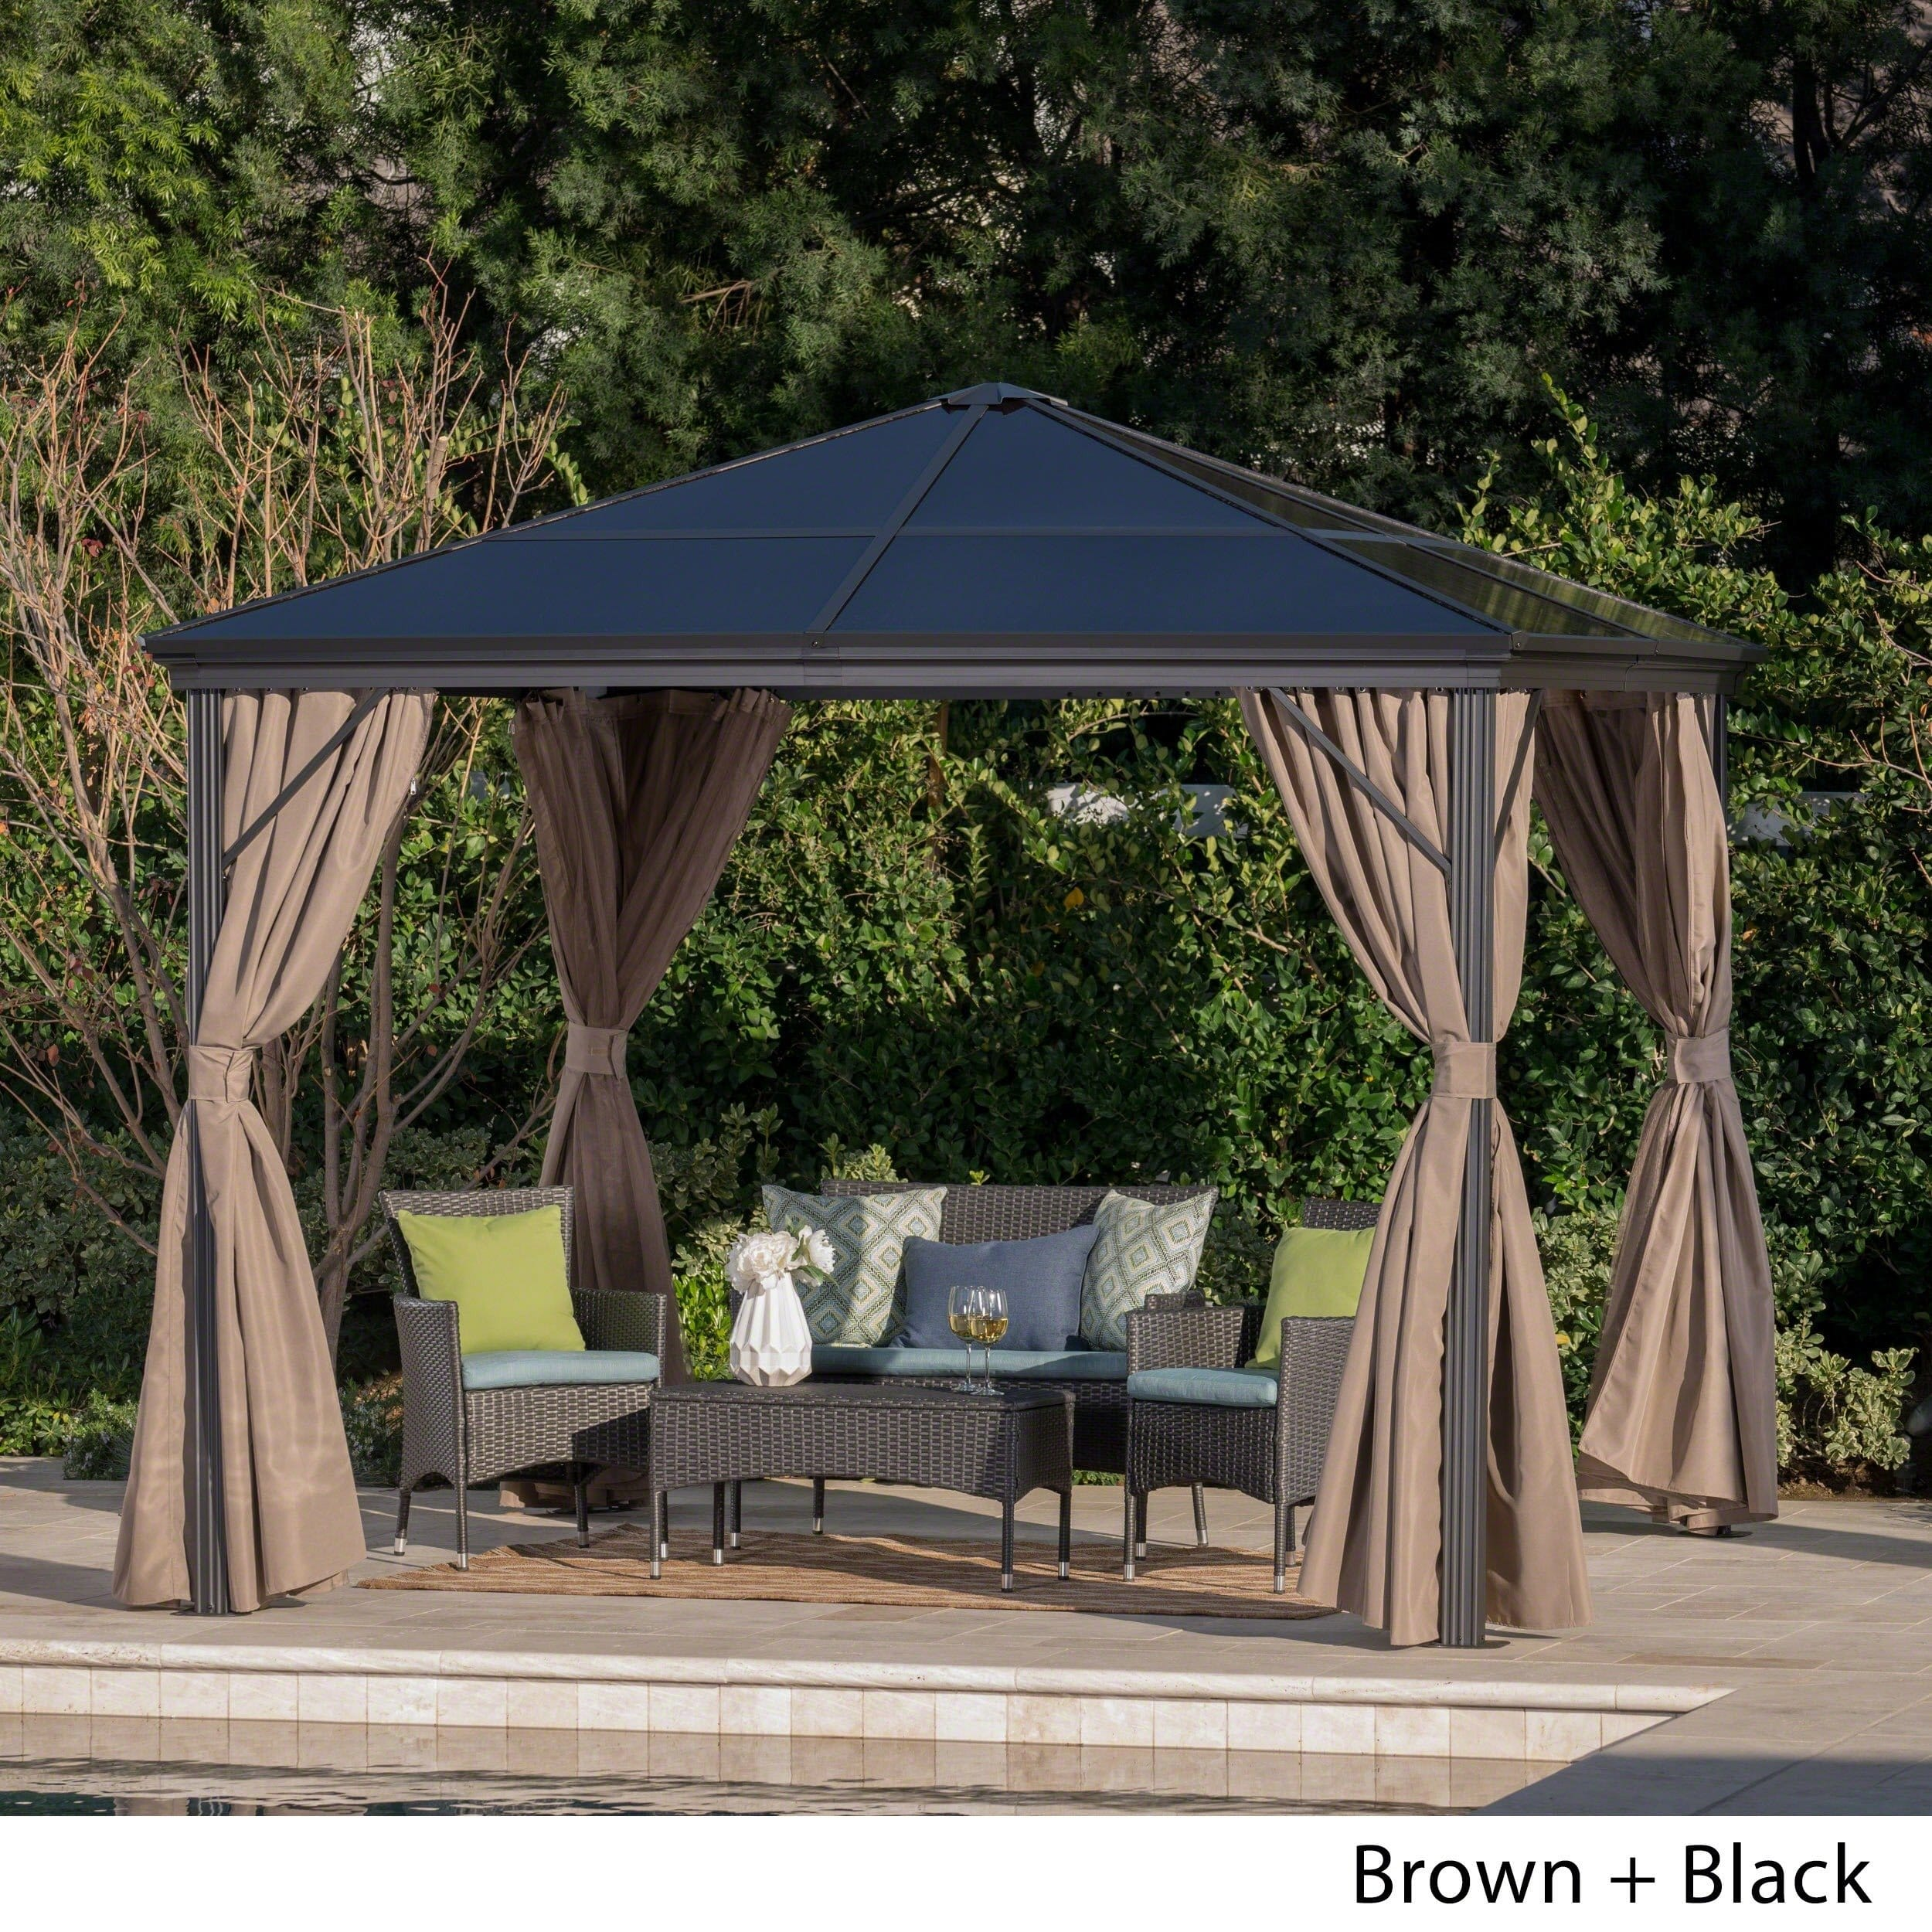 Christopher Knight Home Aruba Outdoor 10 ft. Aluminum Gazebo with Hardtop by  Black, Black Frame/Brown Fabric